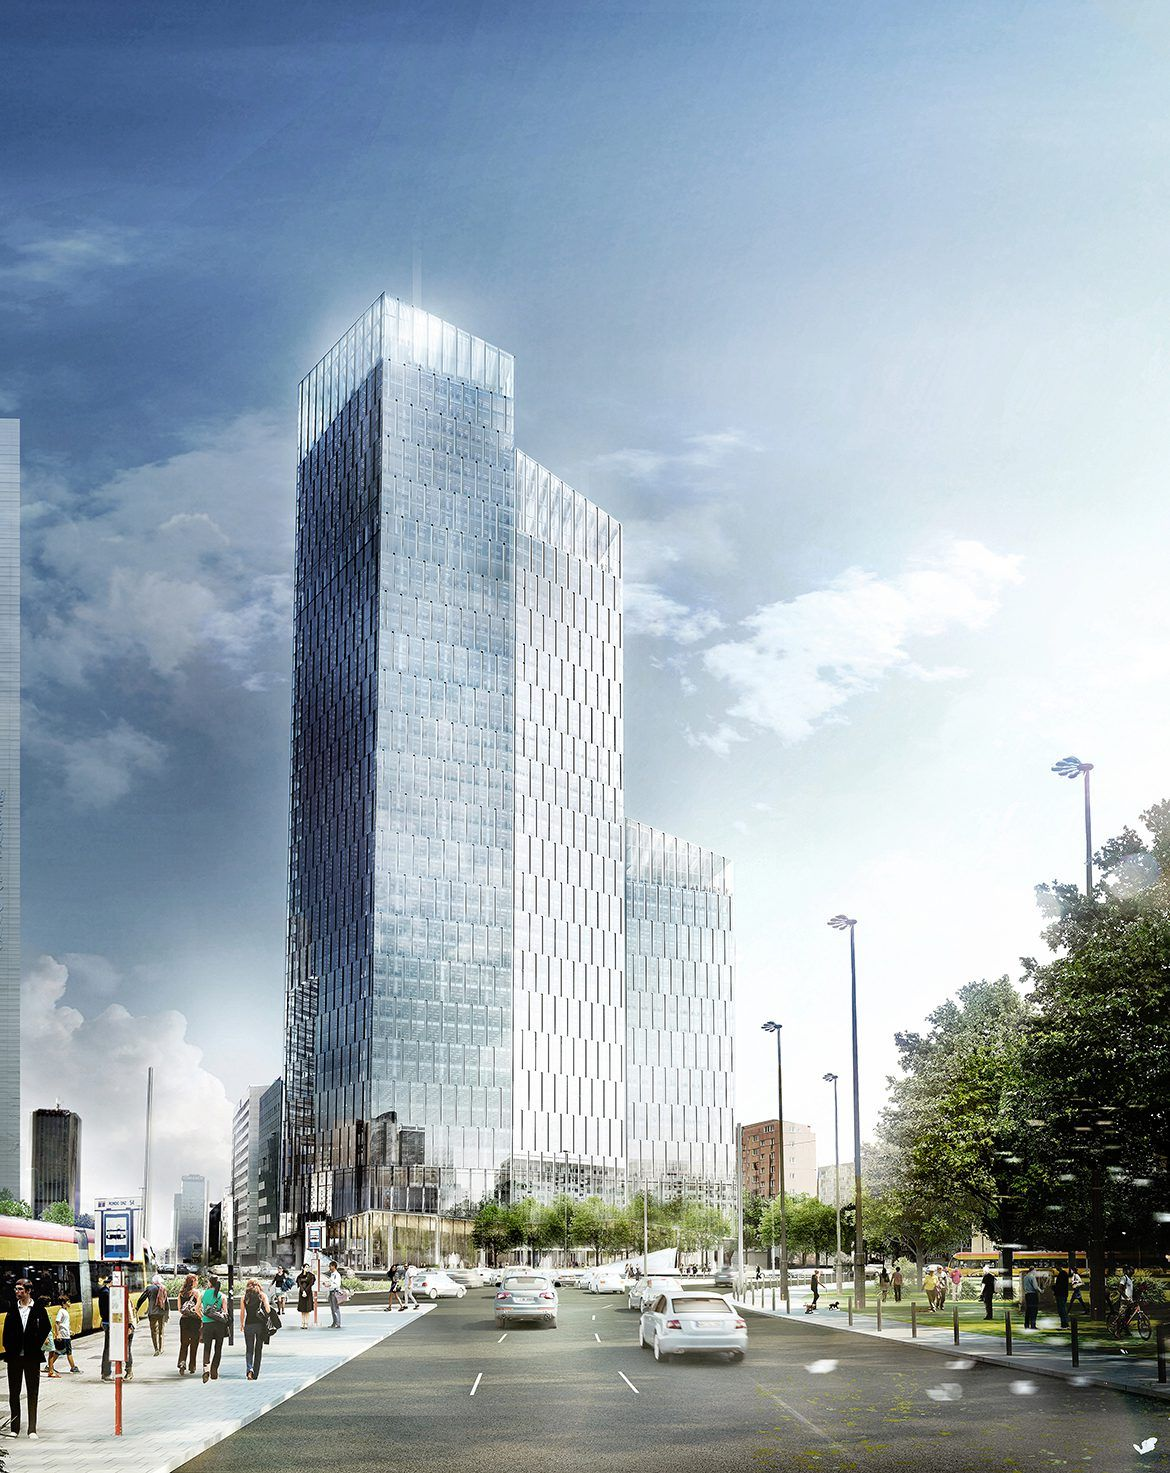 Shl Office Tower Warsaw In 2020 Office Tower Amazing Architecture Warsaw